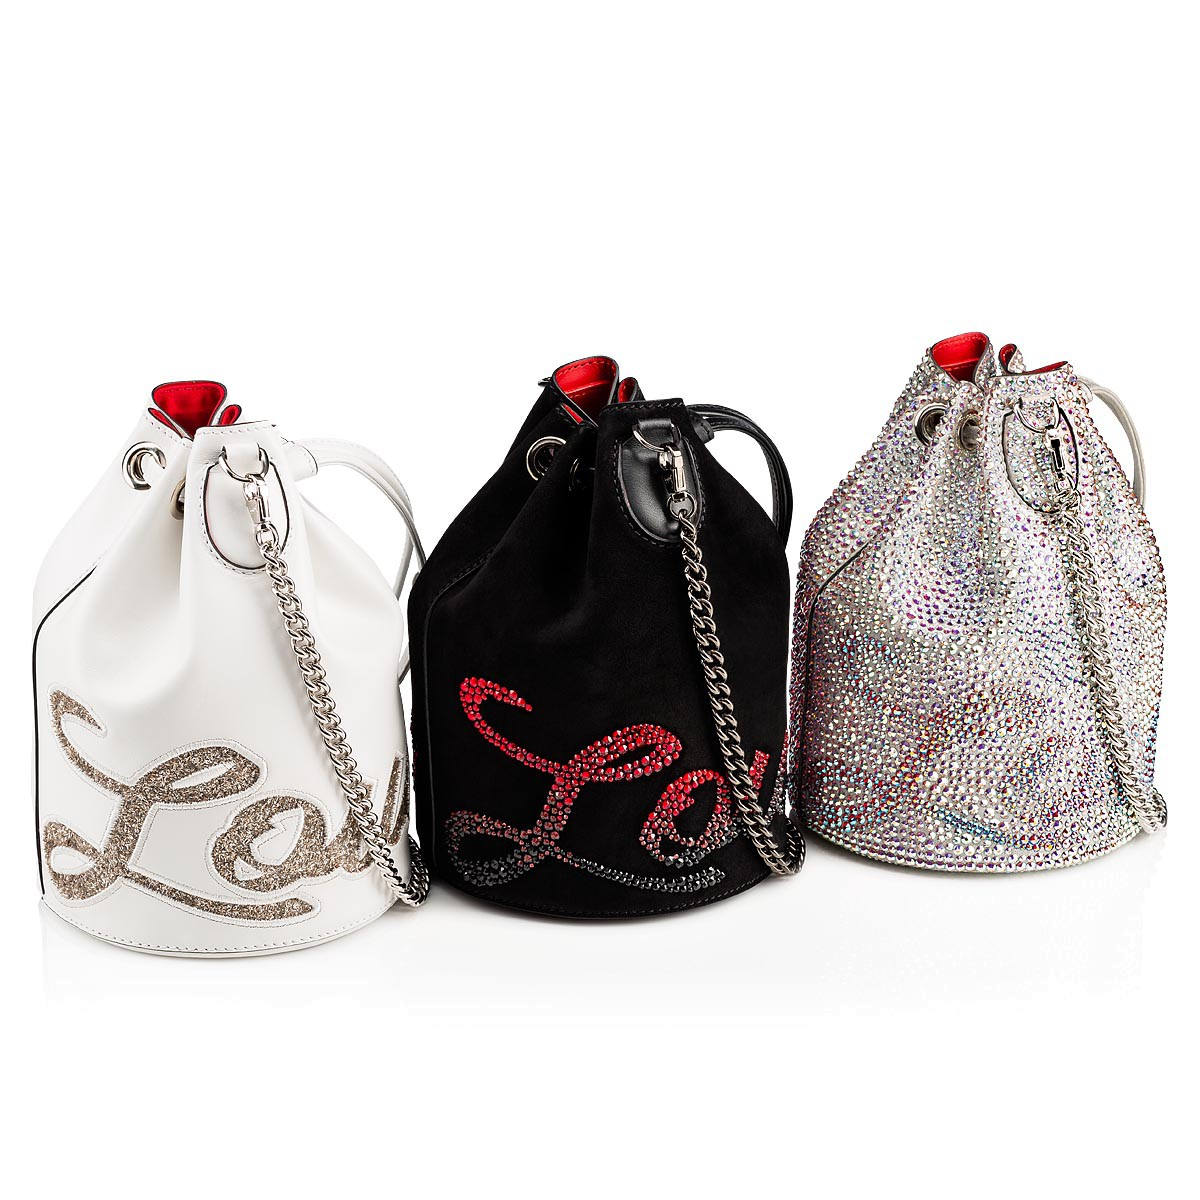 1e5da3c17d36 Marie Jane Bucket Bag Black Red-Black Suede and Strass - Handbags ...